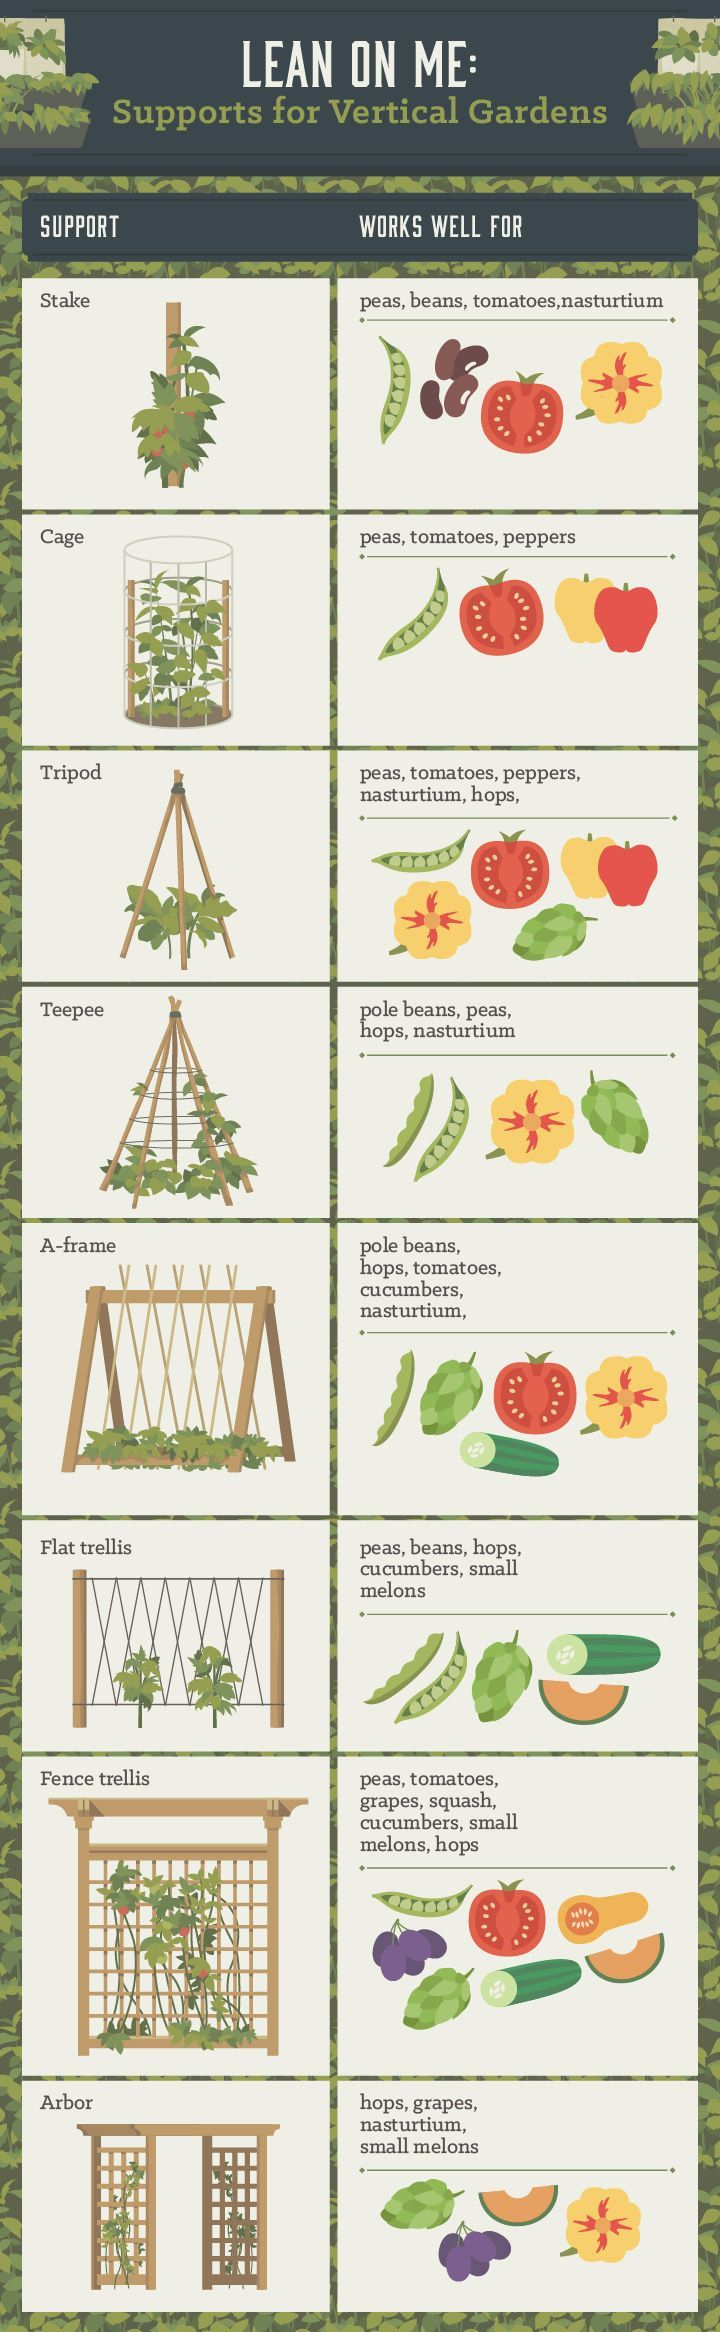 5 Gorgeous Vertical Gardening Beds Save Plants And Vining